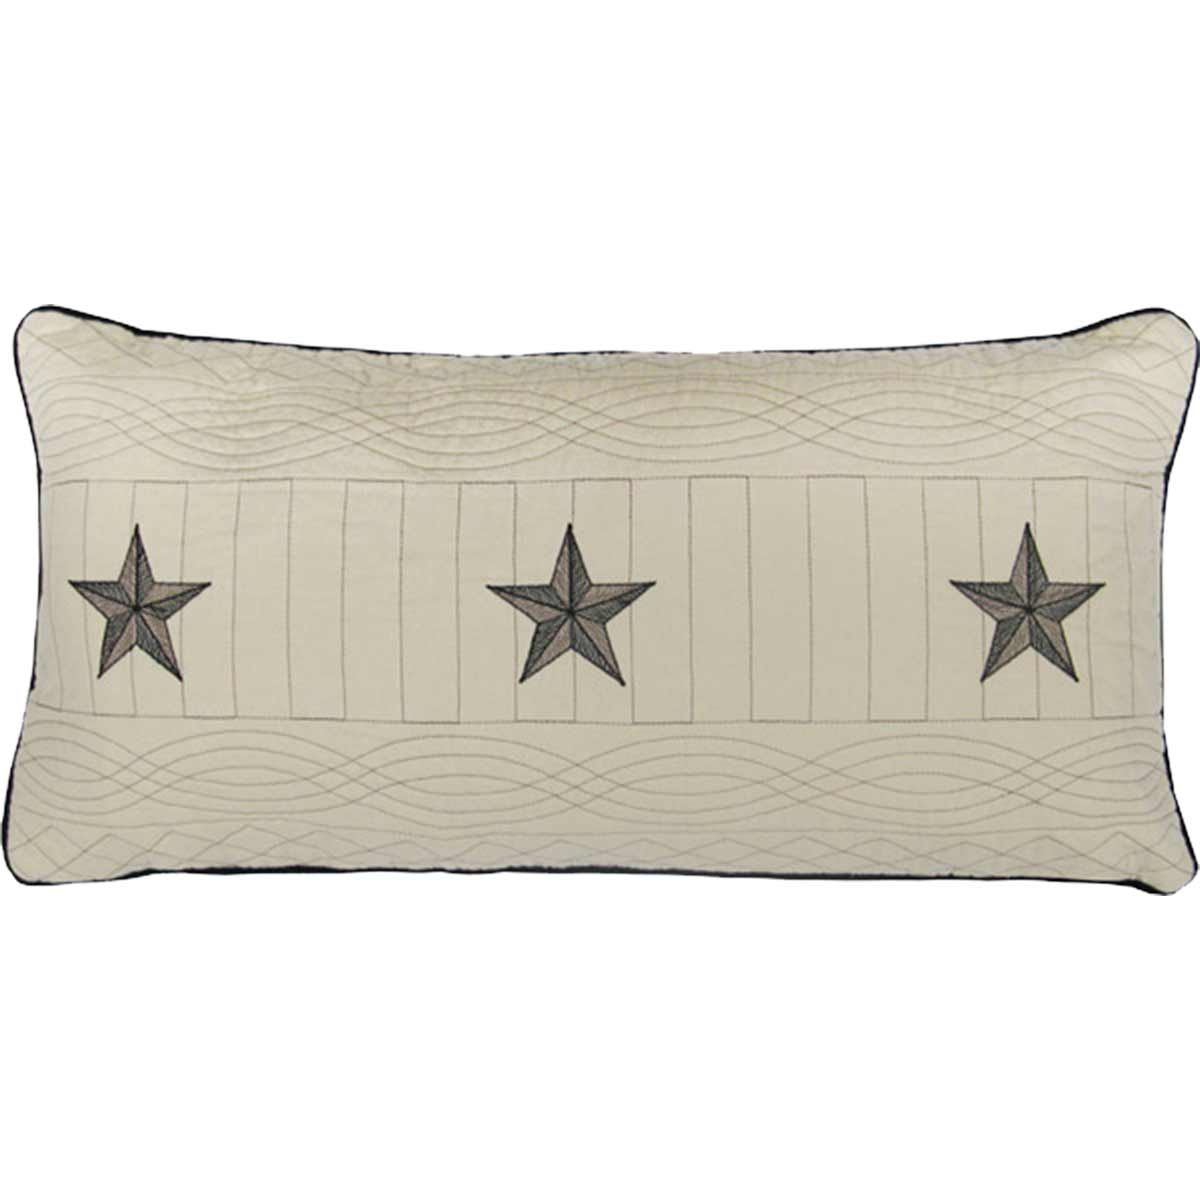 Houston Rectangular Pillow